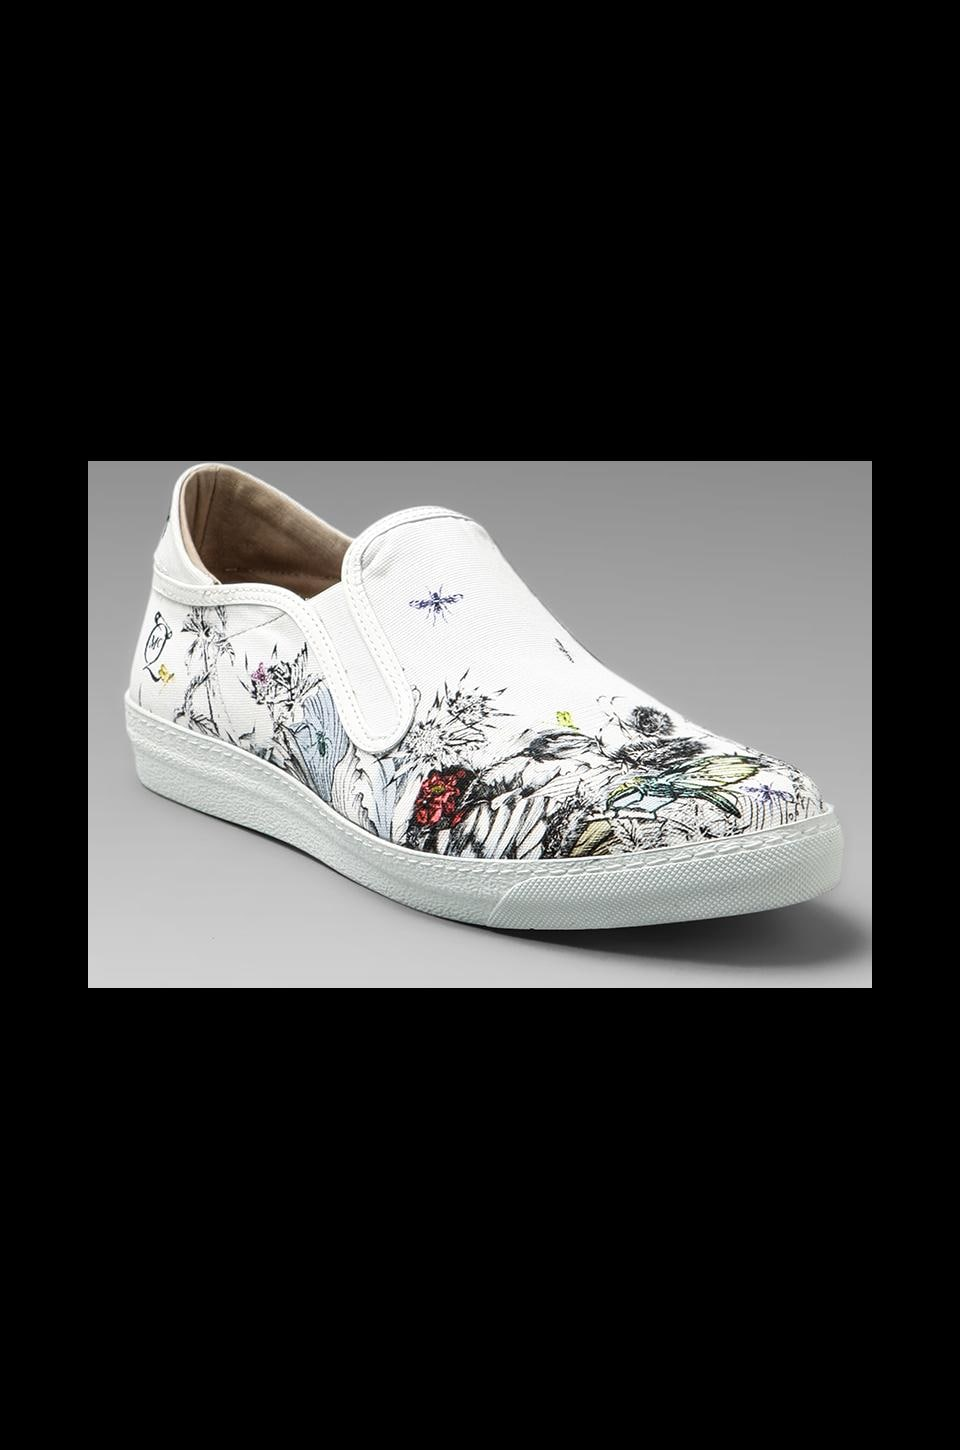 McQ Alexander McQueen Slip-On in White